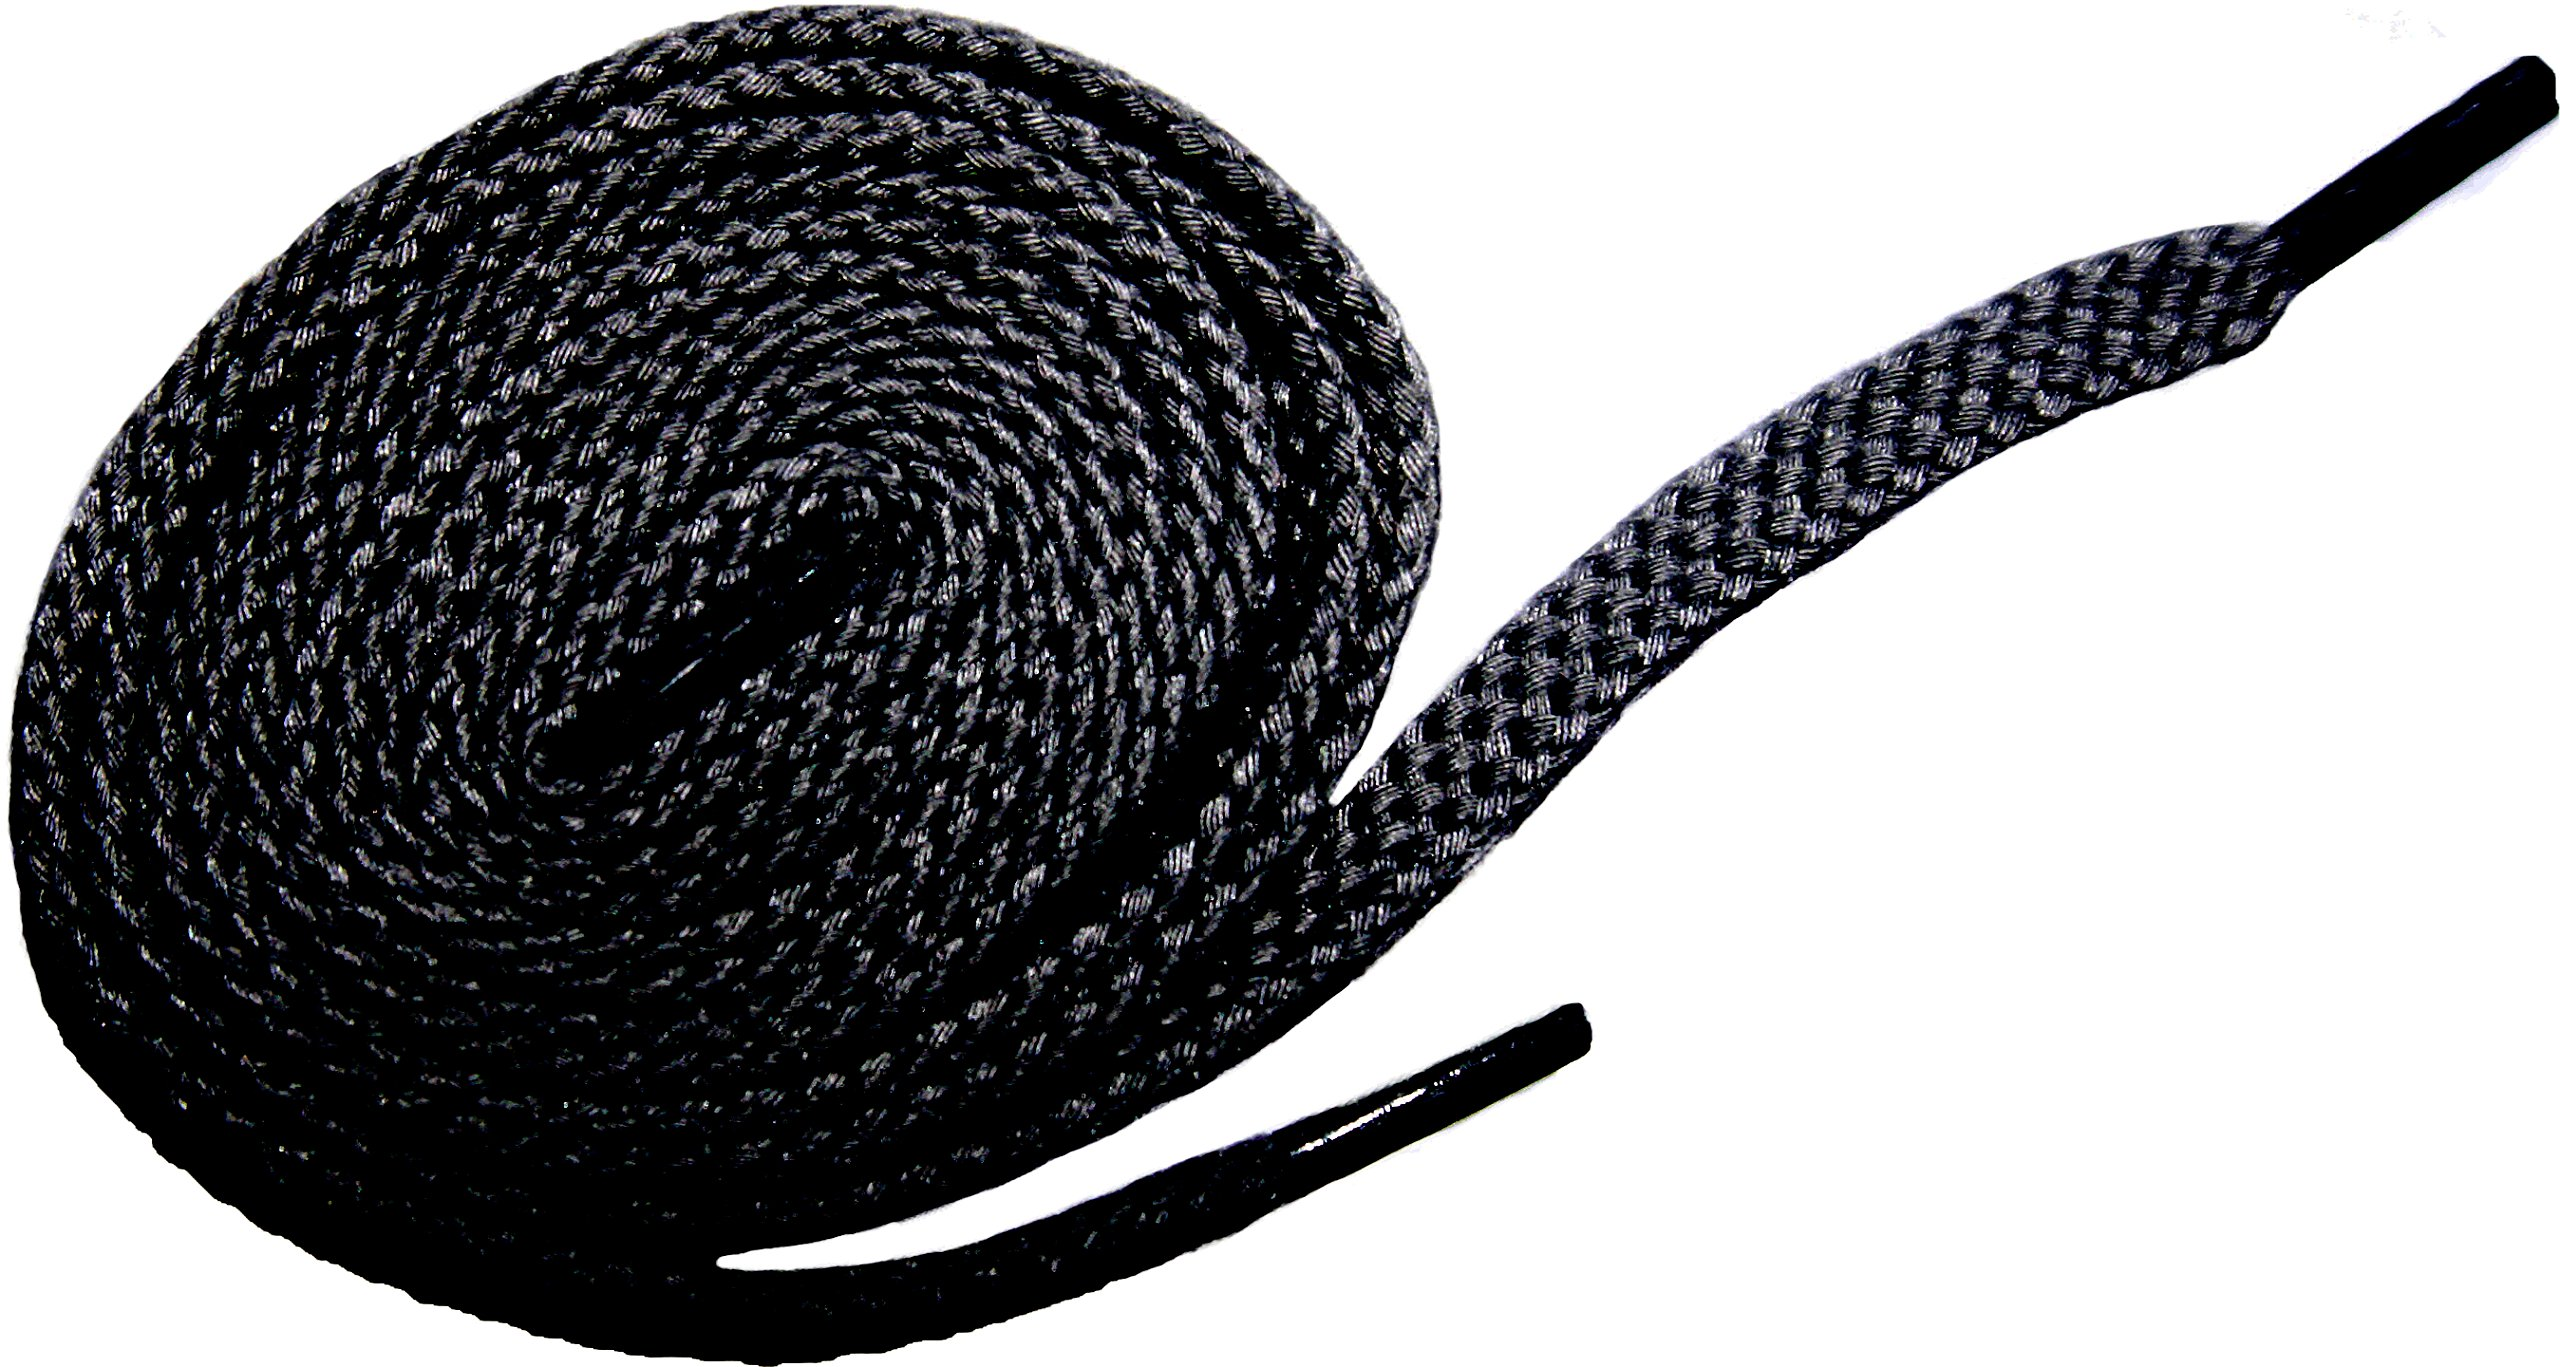 Shoeslulu 35.5'' Premium Oxford Chukka Desert Boot Flat Cotton Canvas Shoe Laces (35.5 in. (90 cm) Pack of 2, Midnight Black)